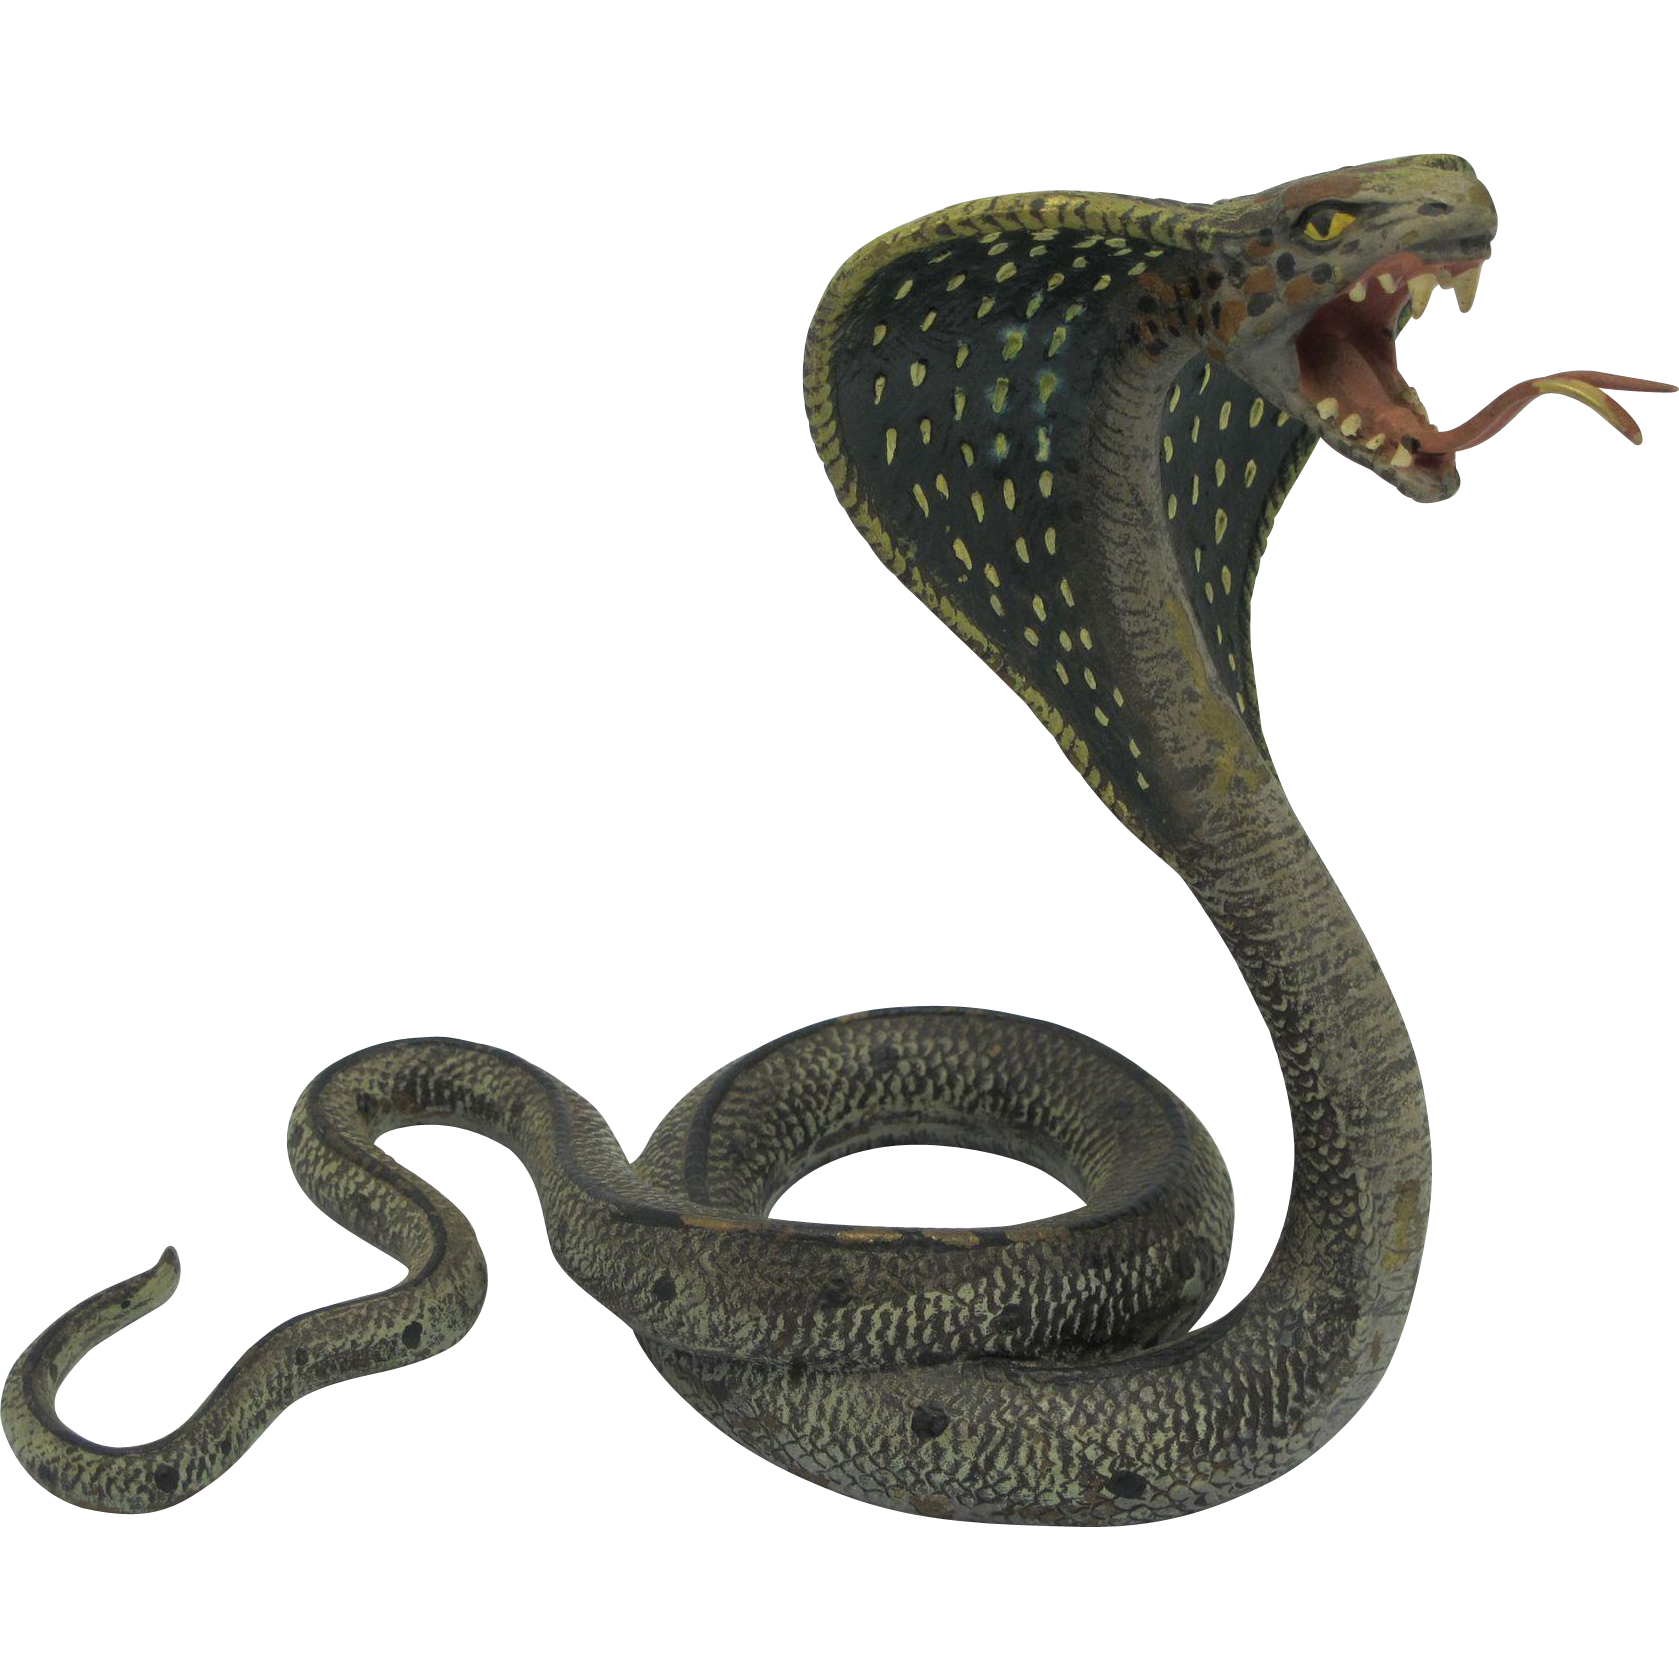 Snake clipart king snake.  collection of cobra